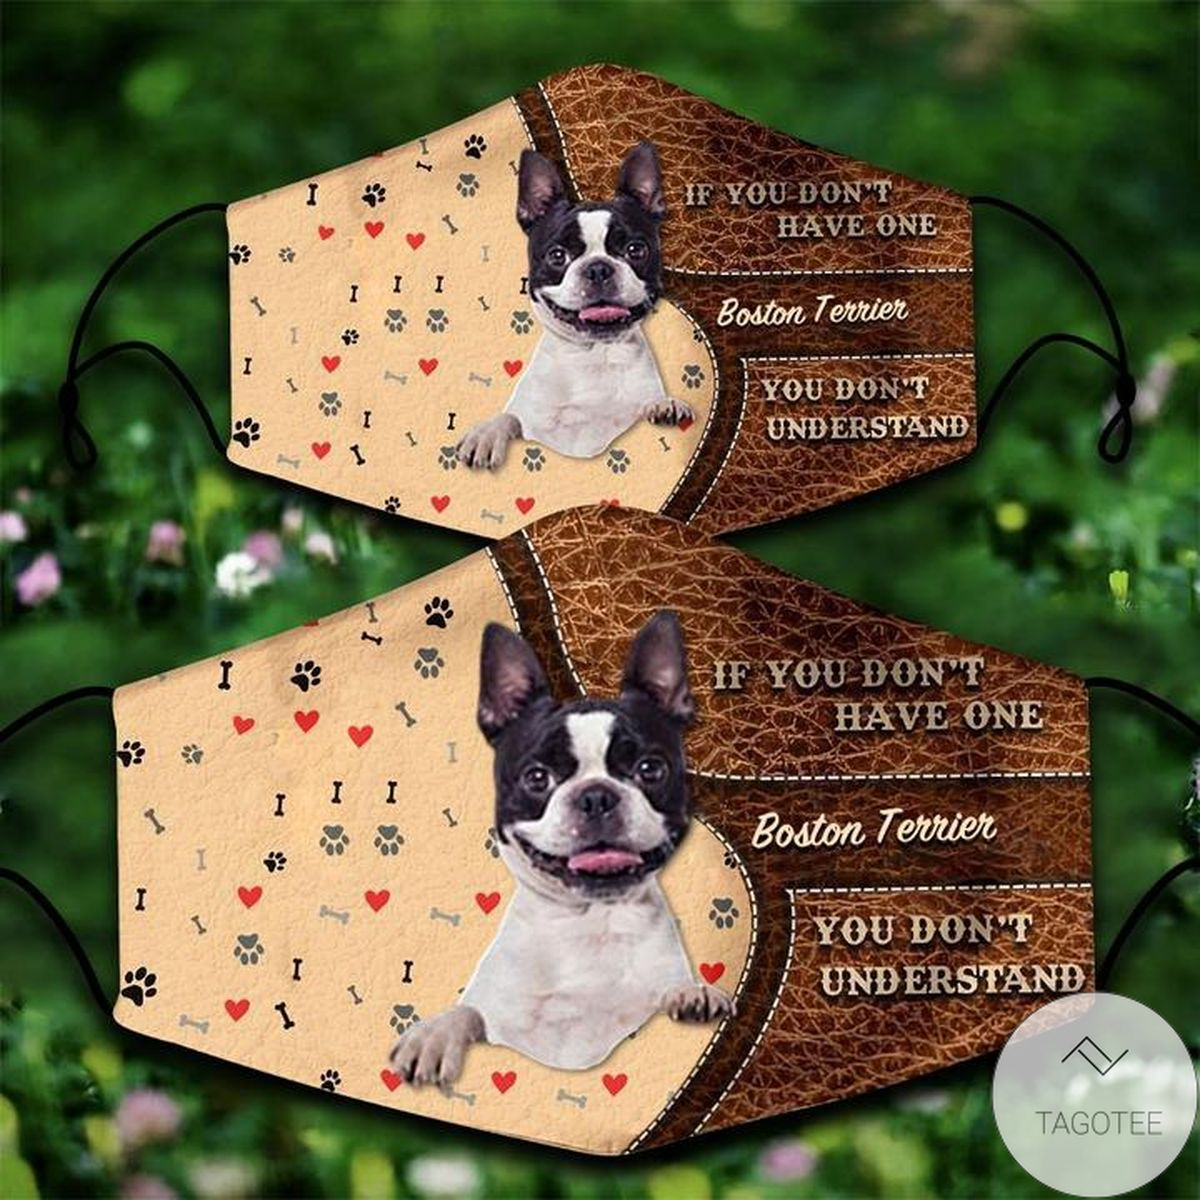 Boston Terrier If You Don't Have One You Don't Understand Face Mask